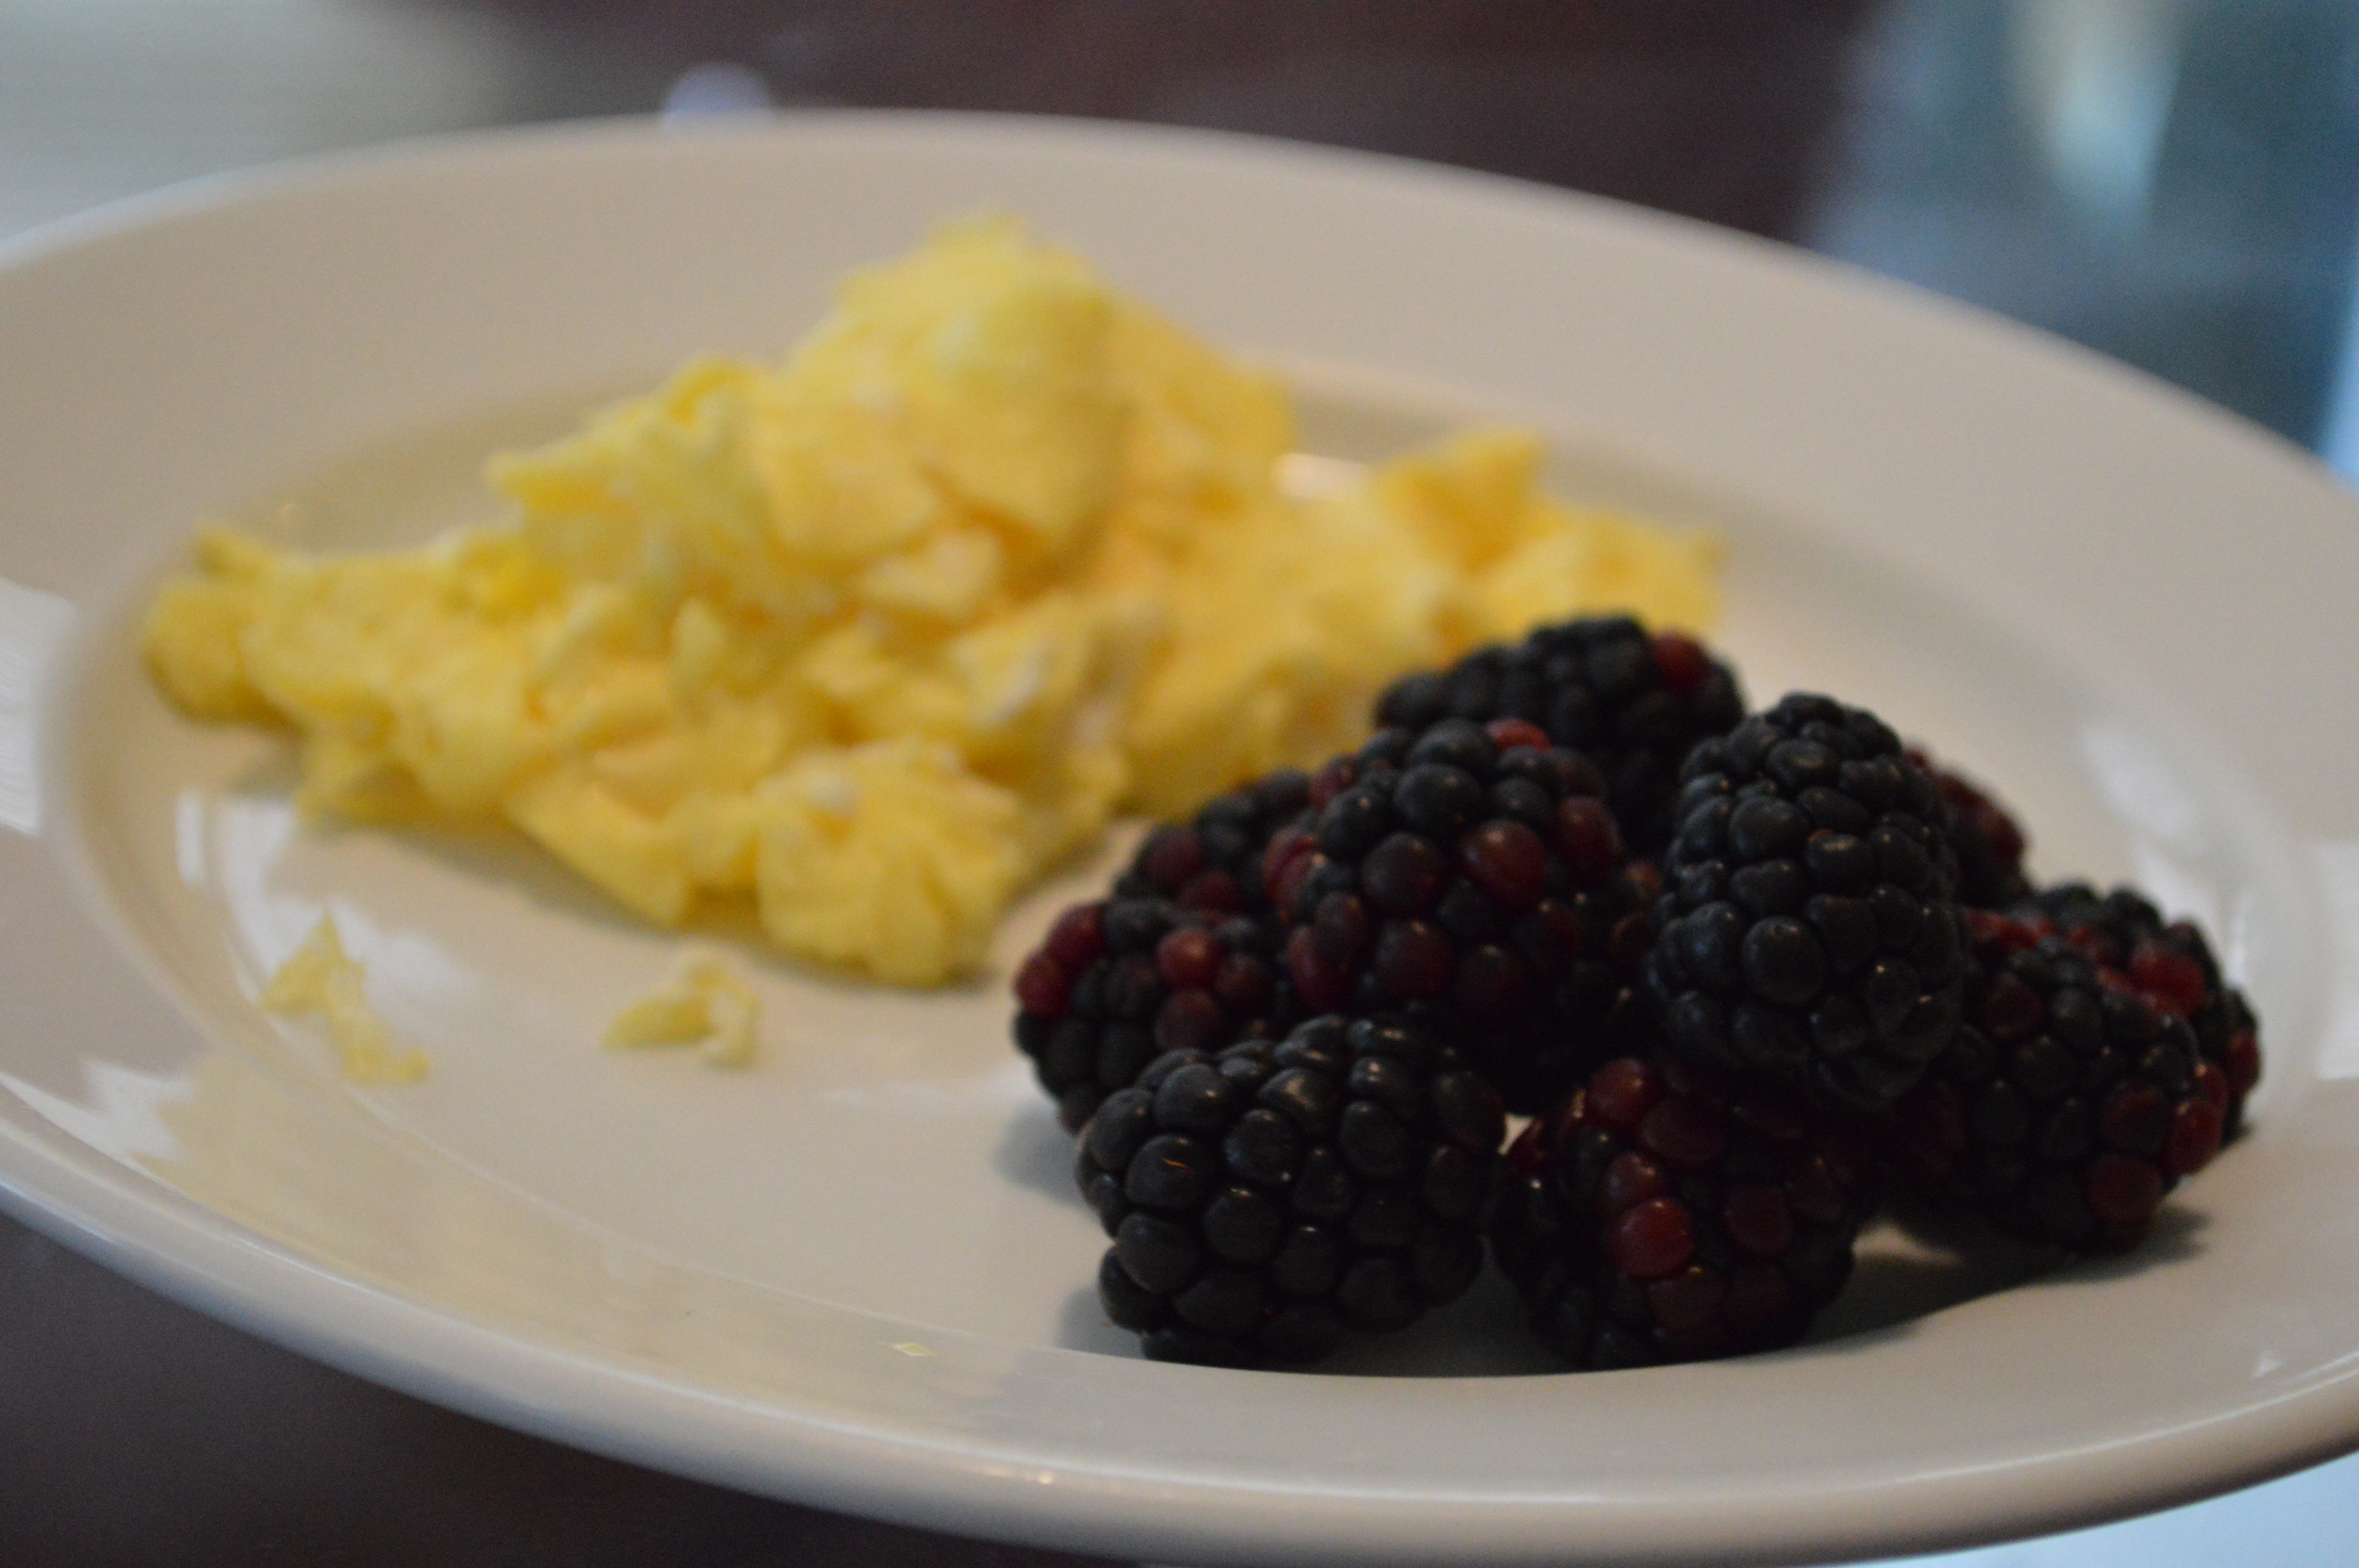 Scrambled Eggs + Blackberries